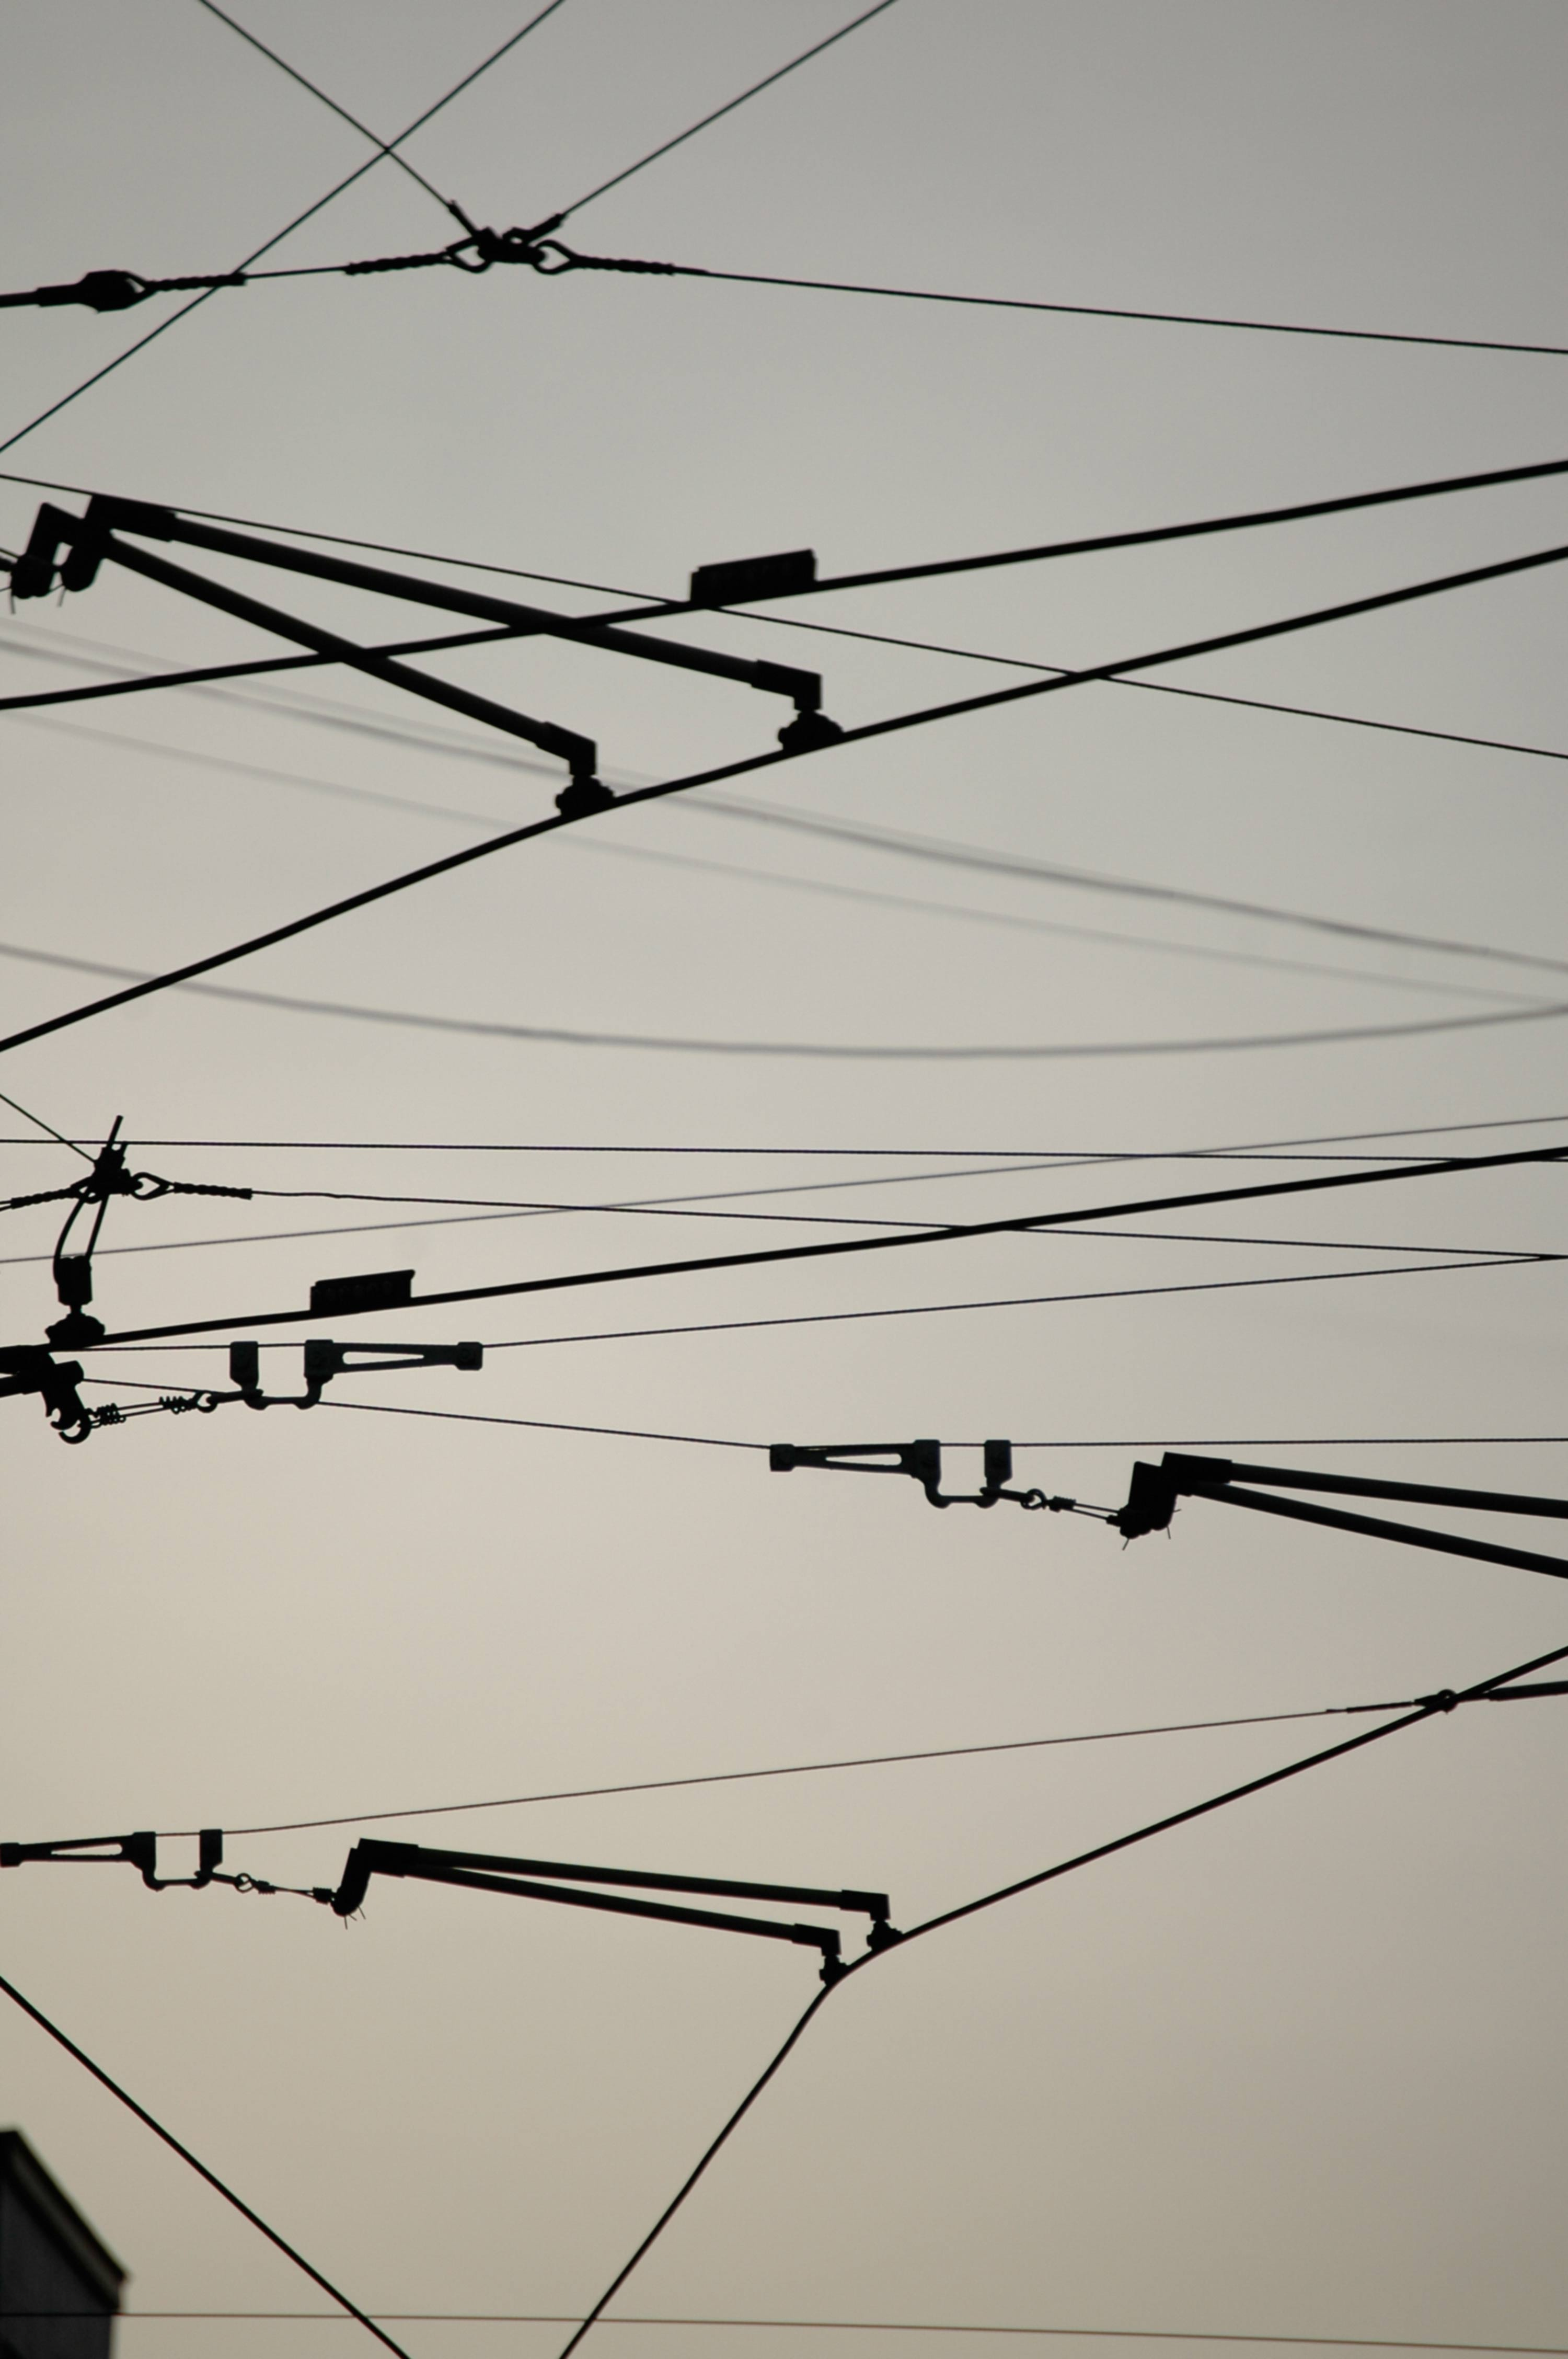 Train or Tram Electricity Wires Pattern